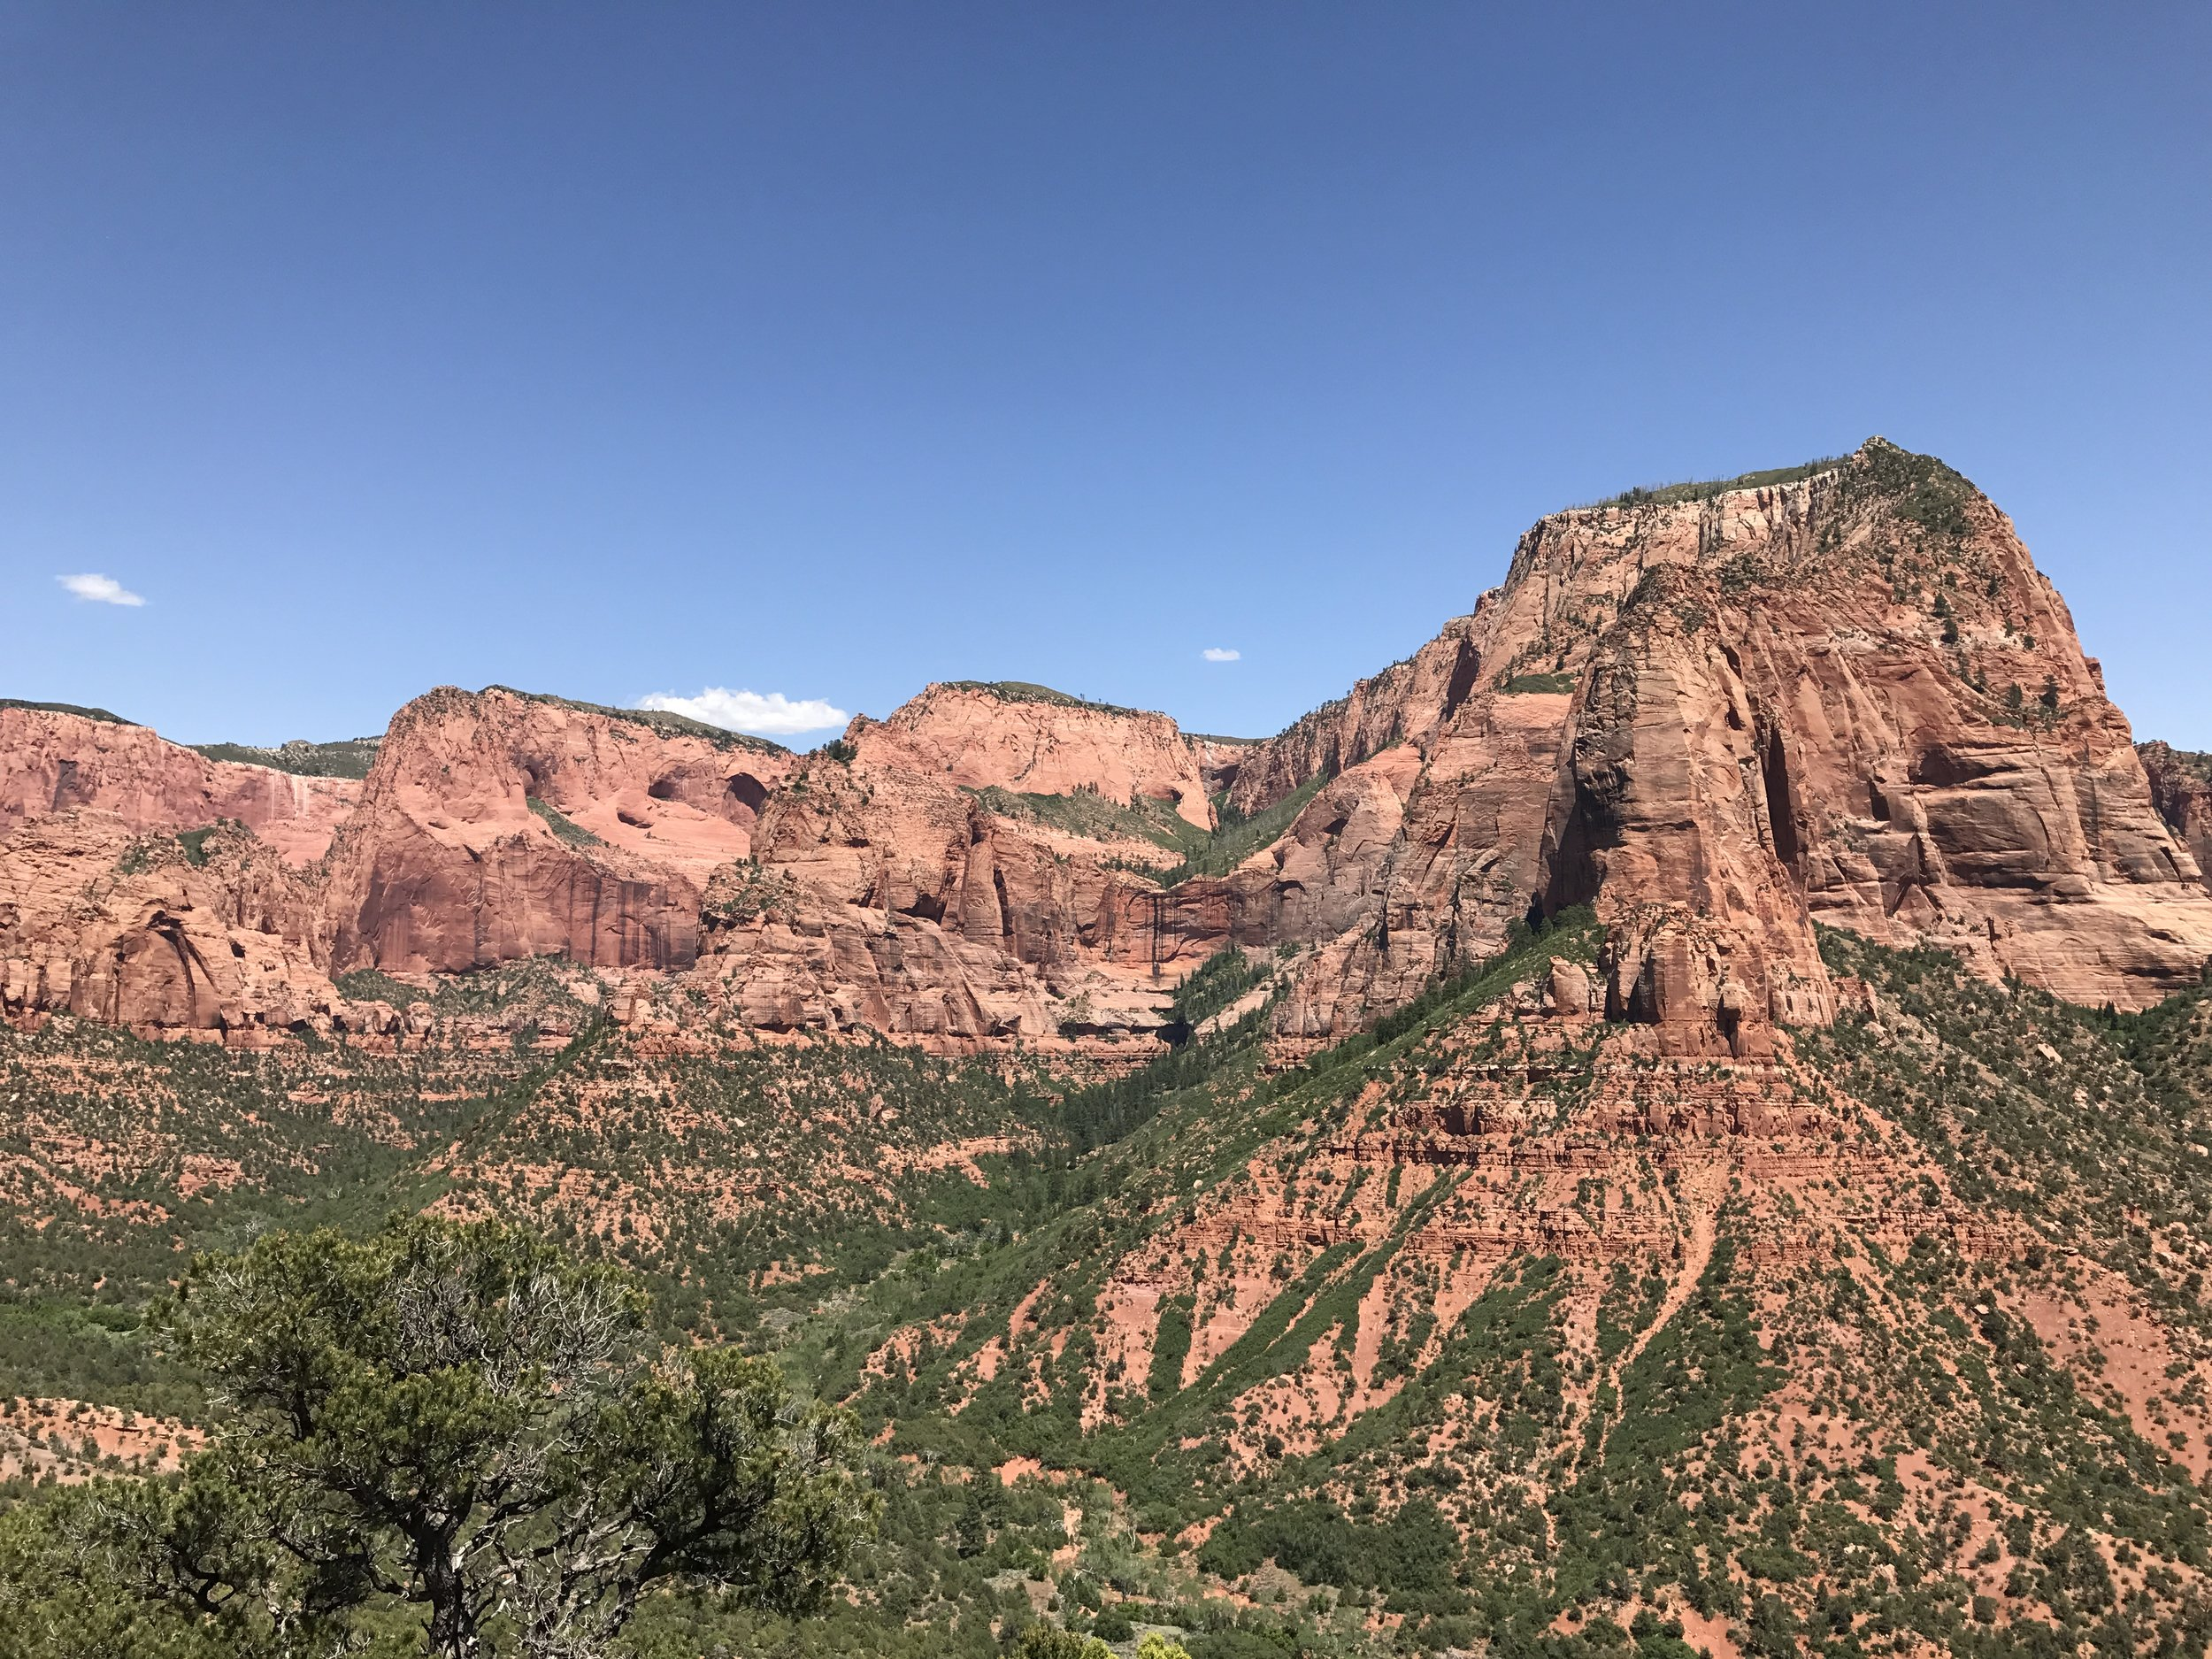 View of the Finger Canyons from the Timber Creek Overlook